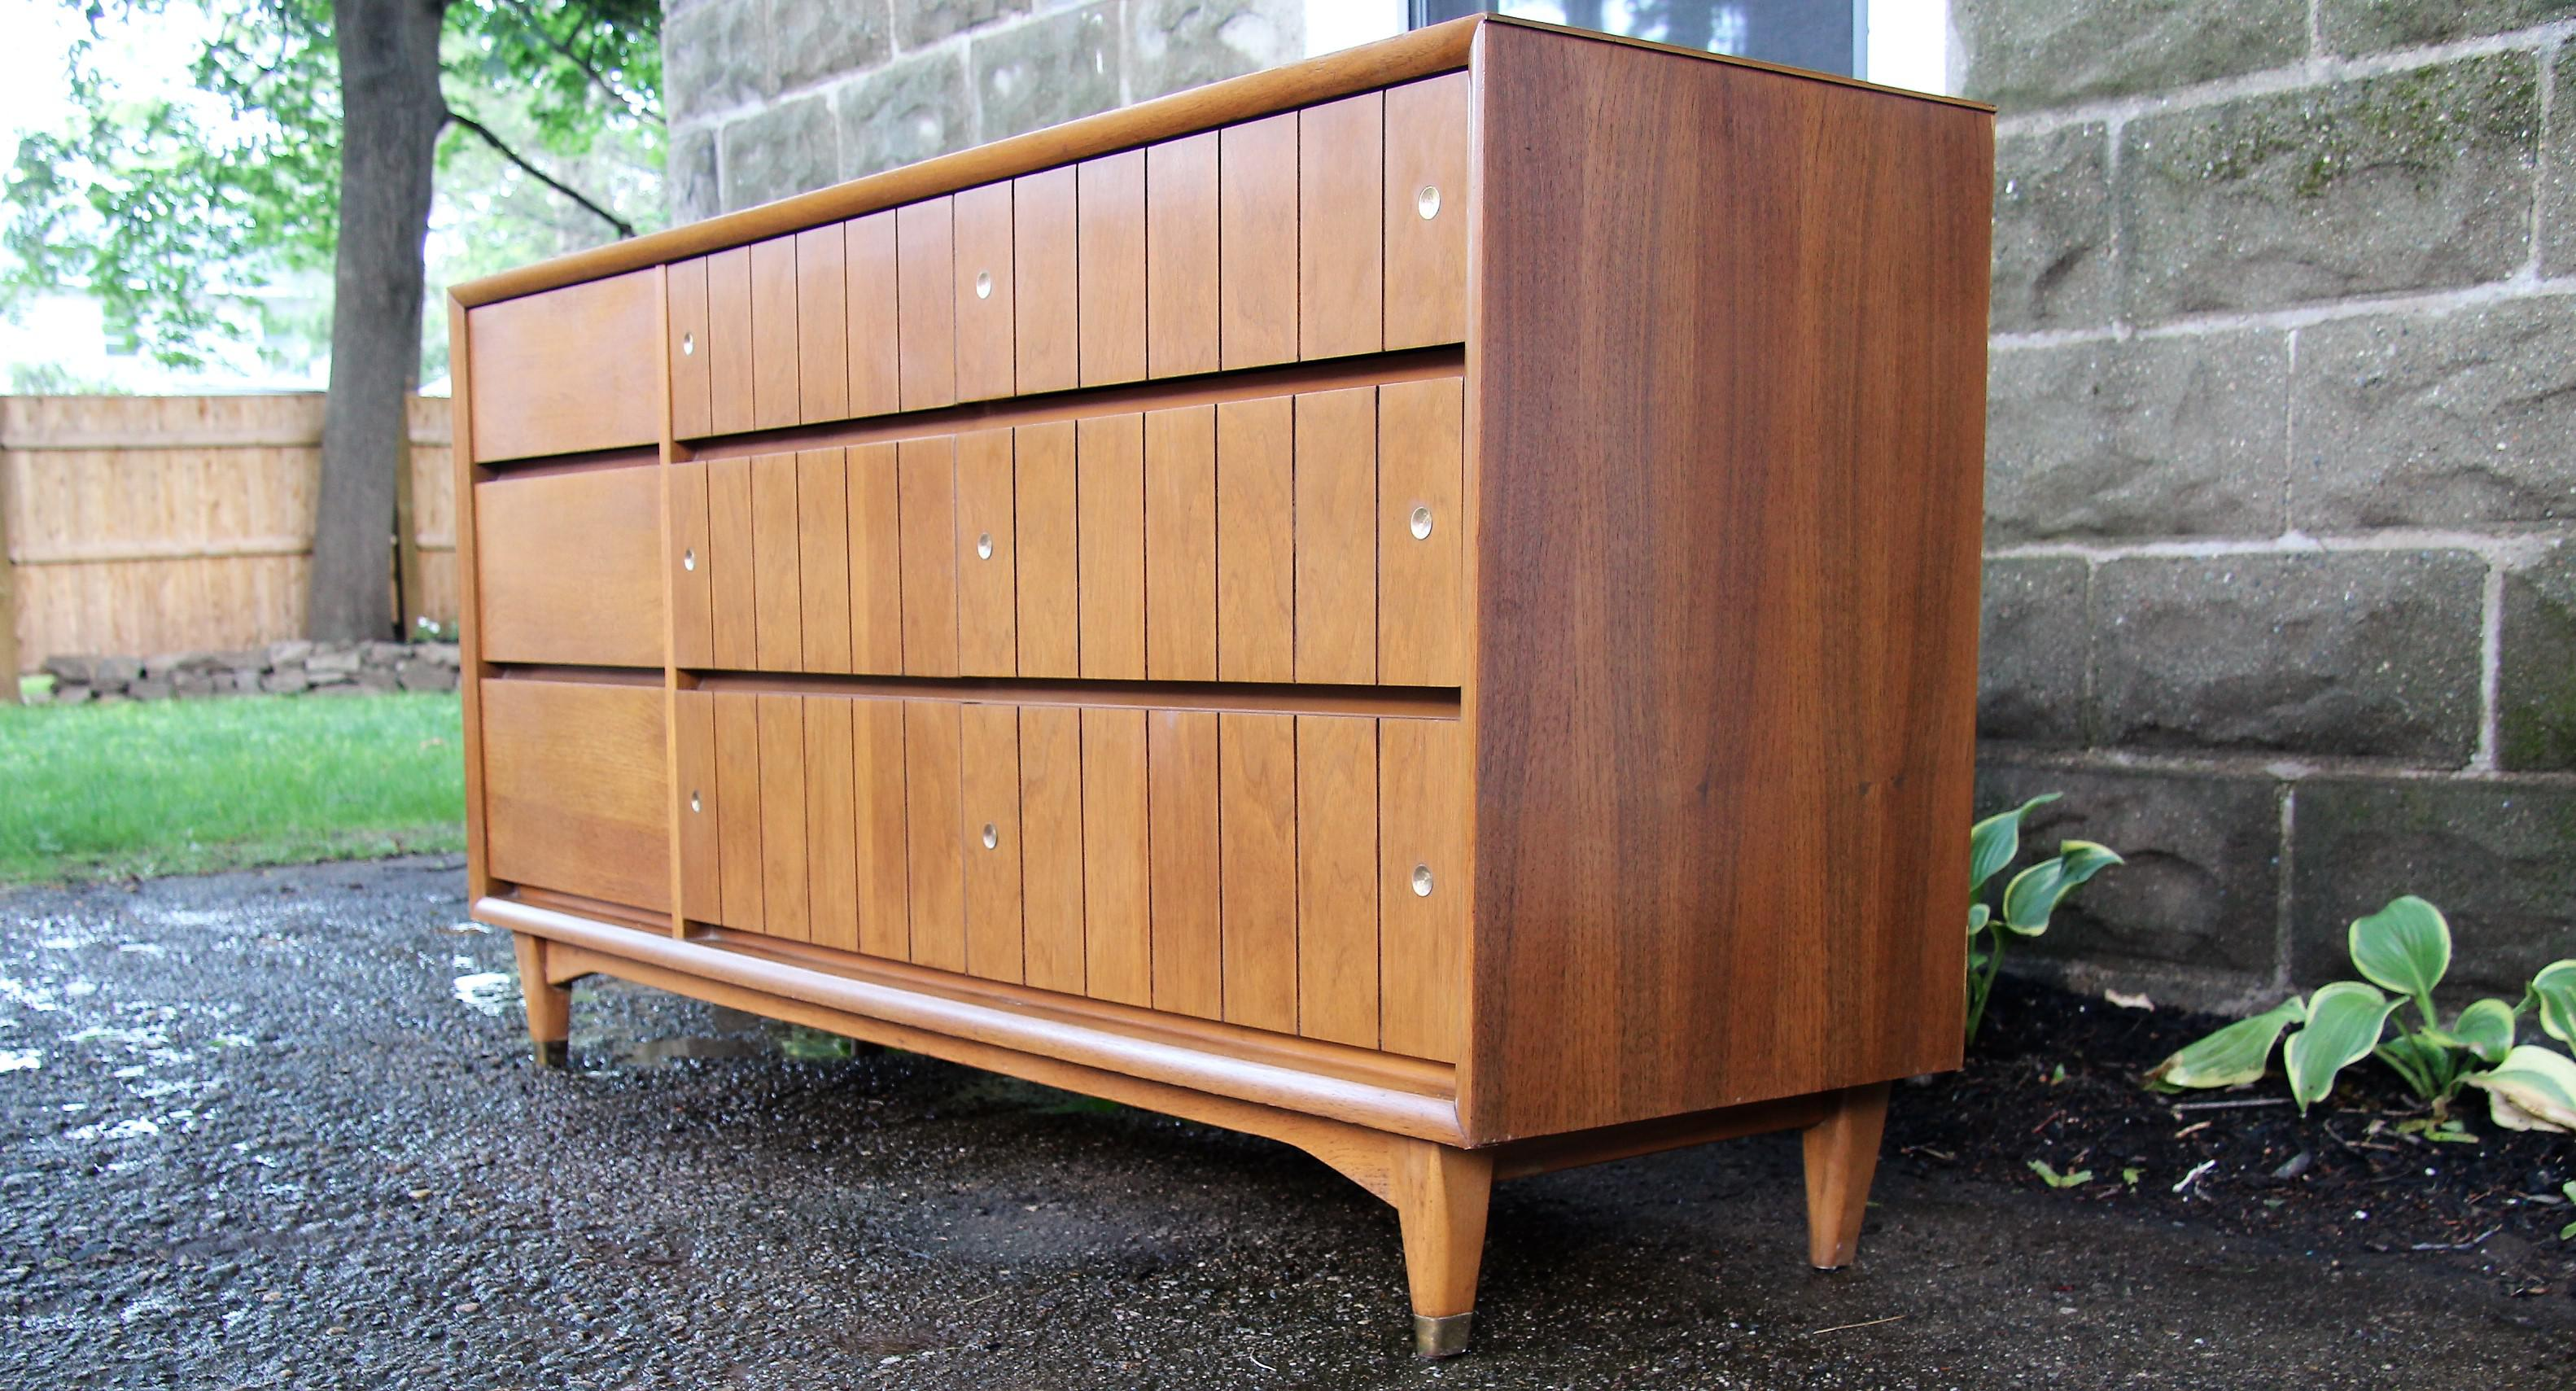 image of kroehler furniture midcentury credenza - Kroehler Furniture